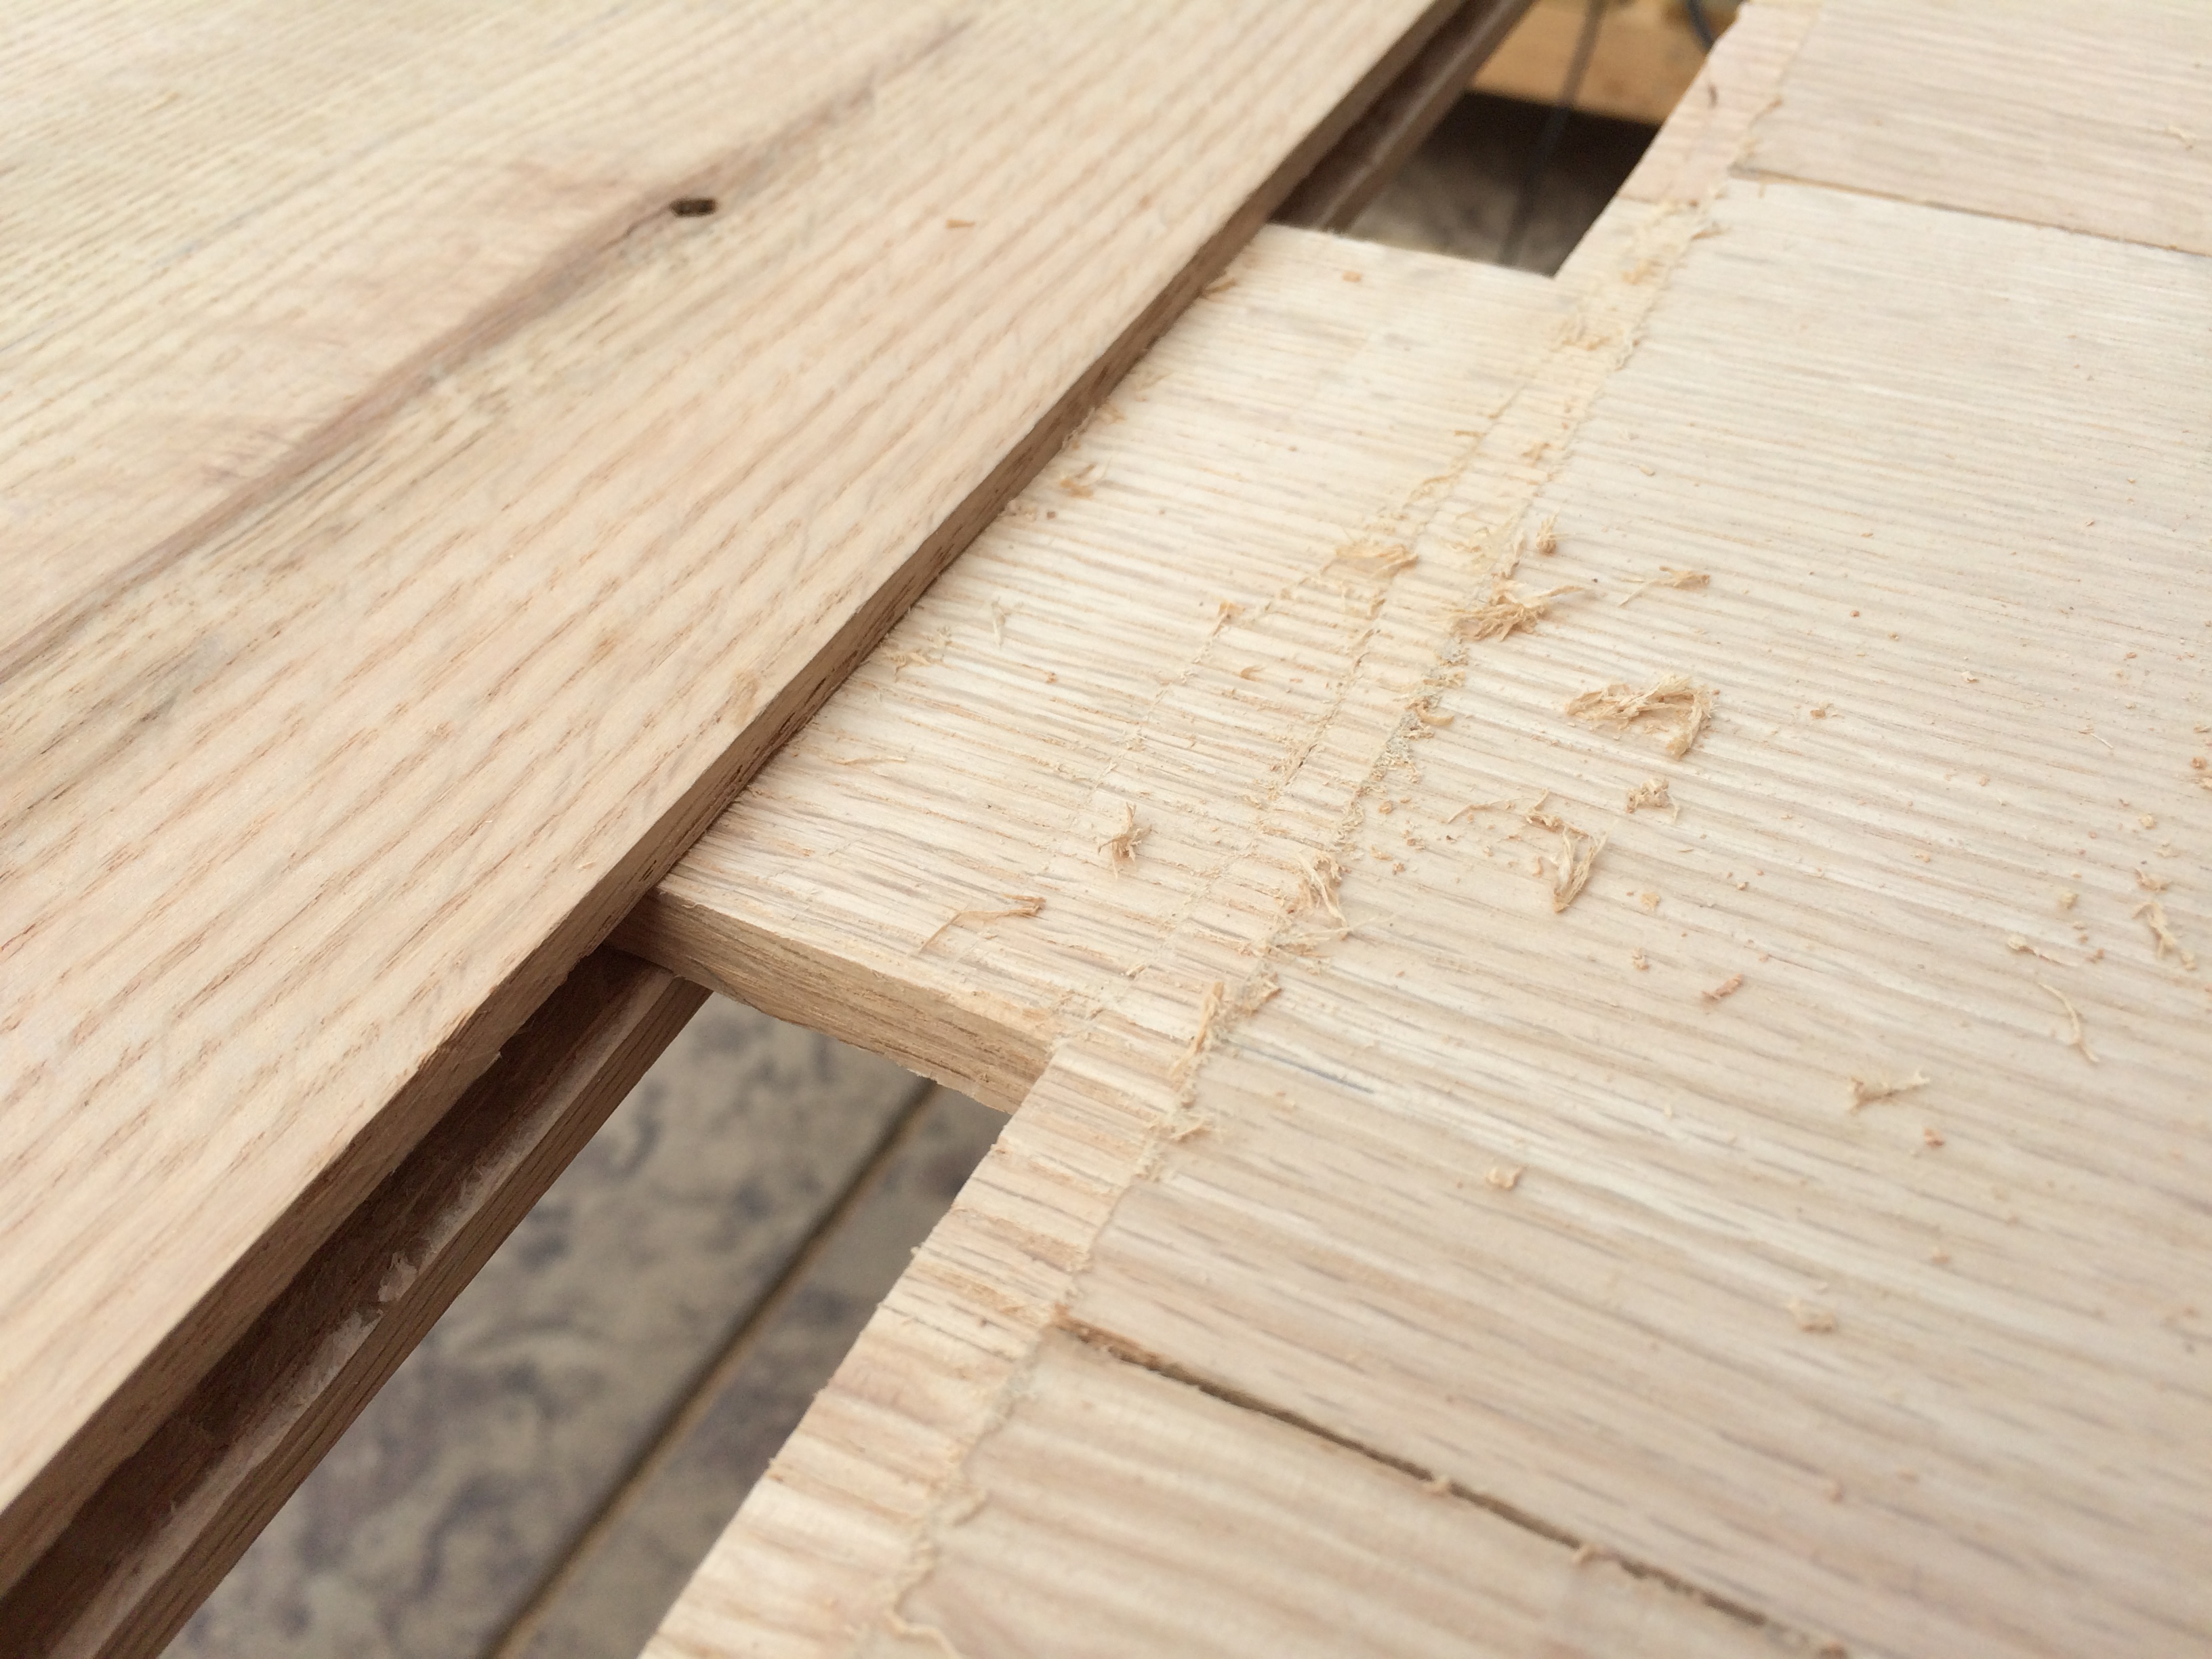 Mortise And Tenon Jig Lowes